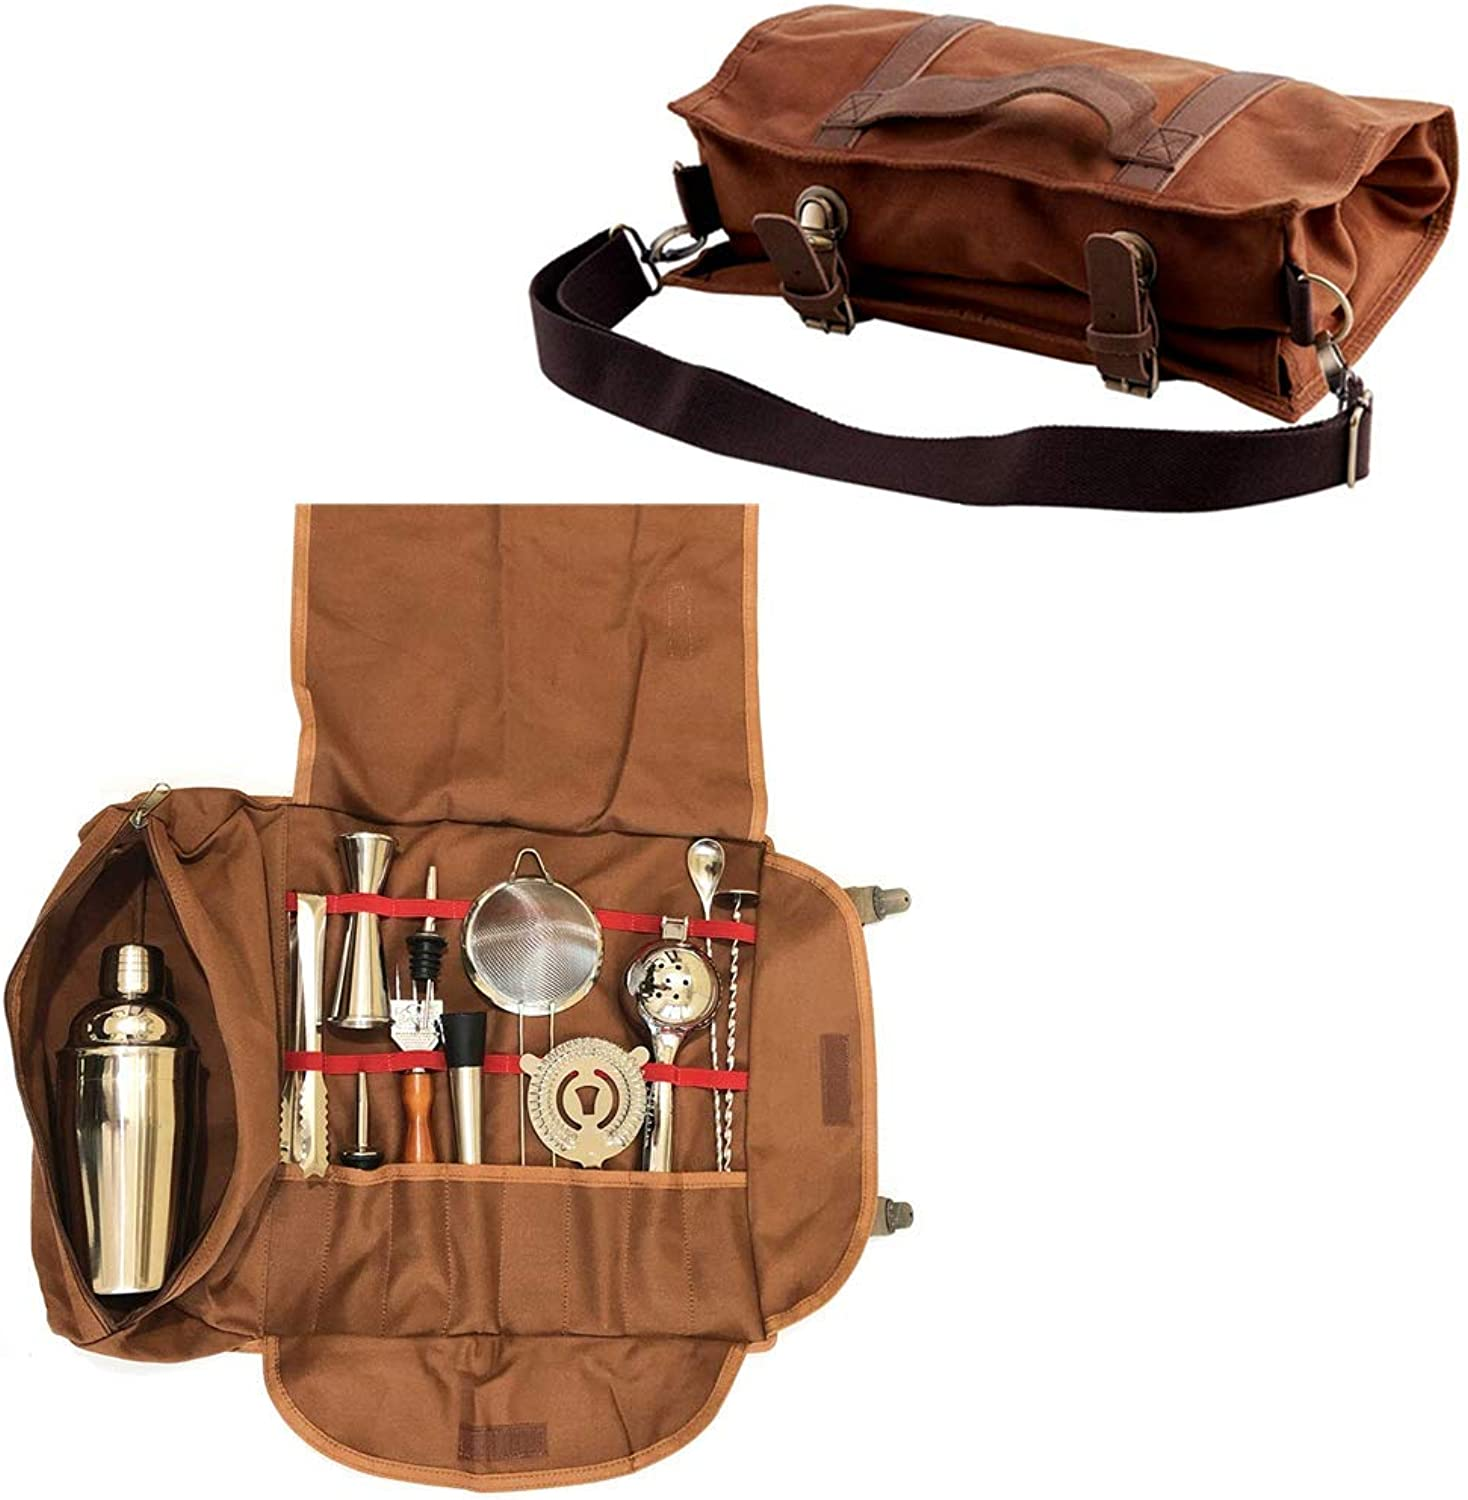 Bartender Kit Bag – Portable Bar Tool Roll Bag, Perfect for traveling and Party Event – GJB01 (Bag+Tools)